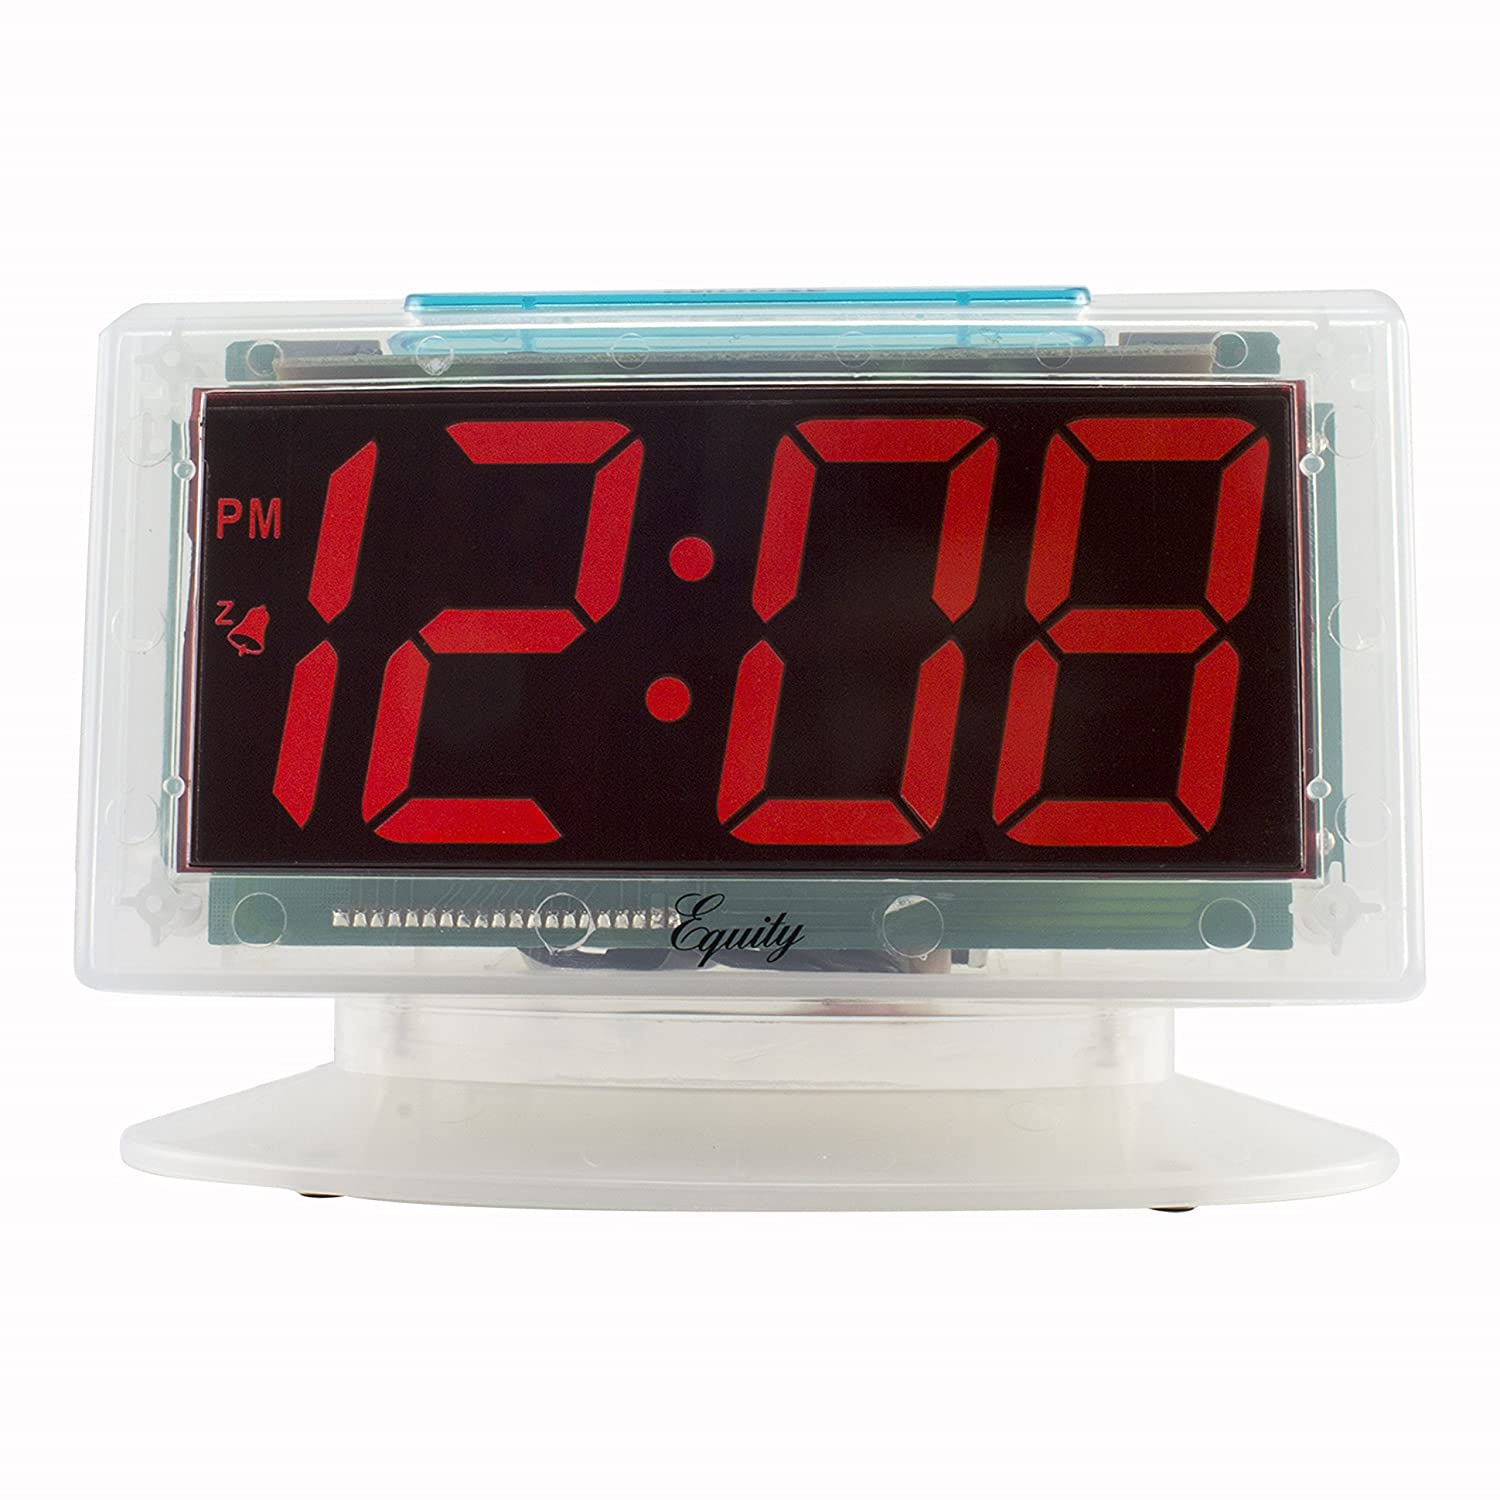 Red LED Electric Alarm Clock Equity by La Crosse 30040 Jumbo Clear 1.8 in